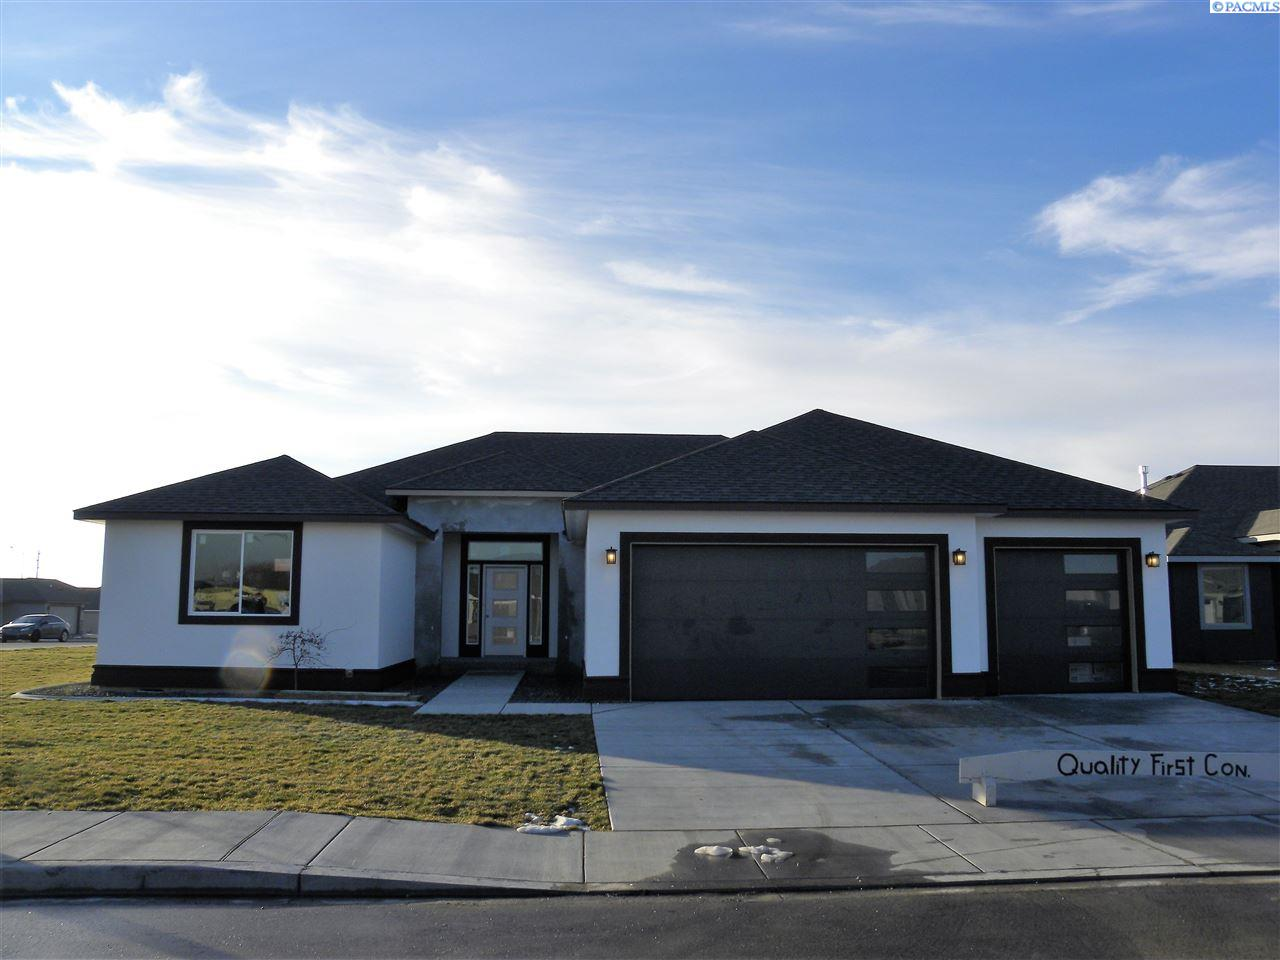 Single Family Home for Sale at 5914 Cotswold Ln 5914 Cotswold Ln Pasco, Washington 99301 United States